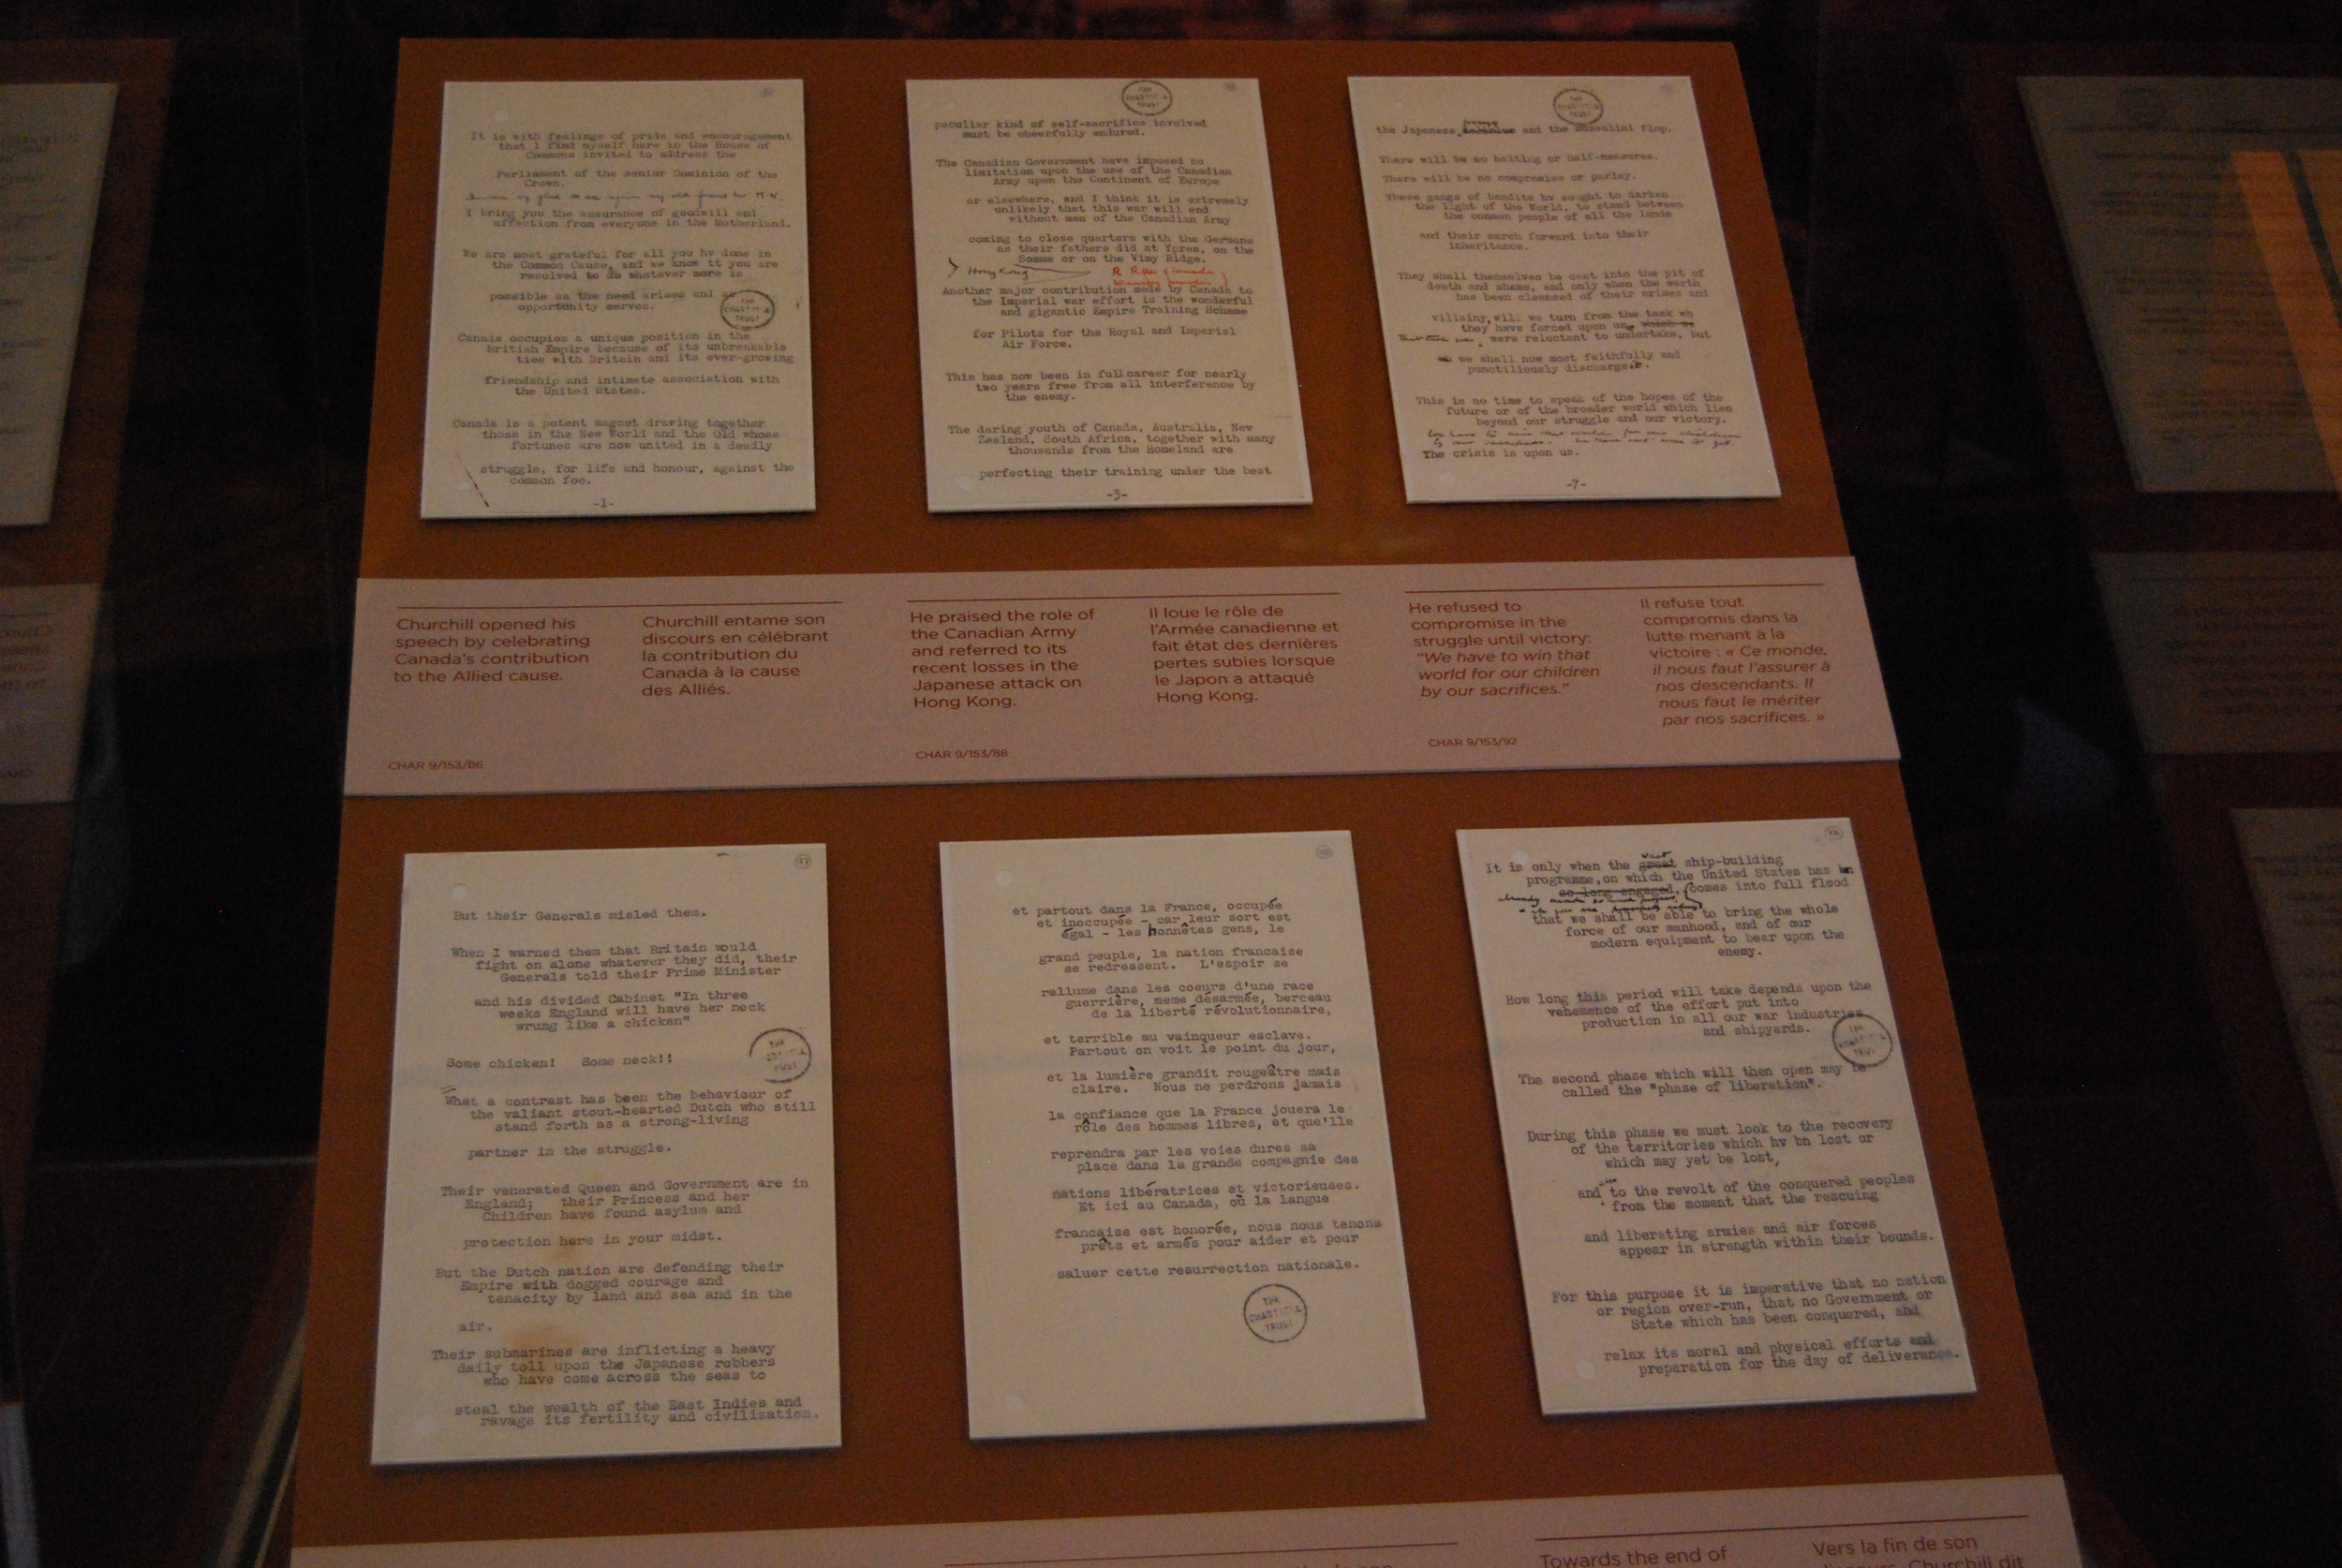 Six original pages from the December 30, 1941 speech